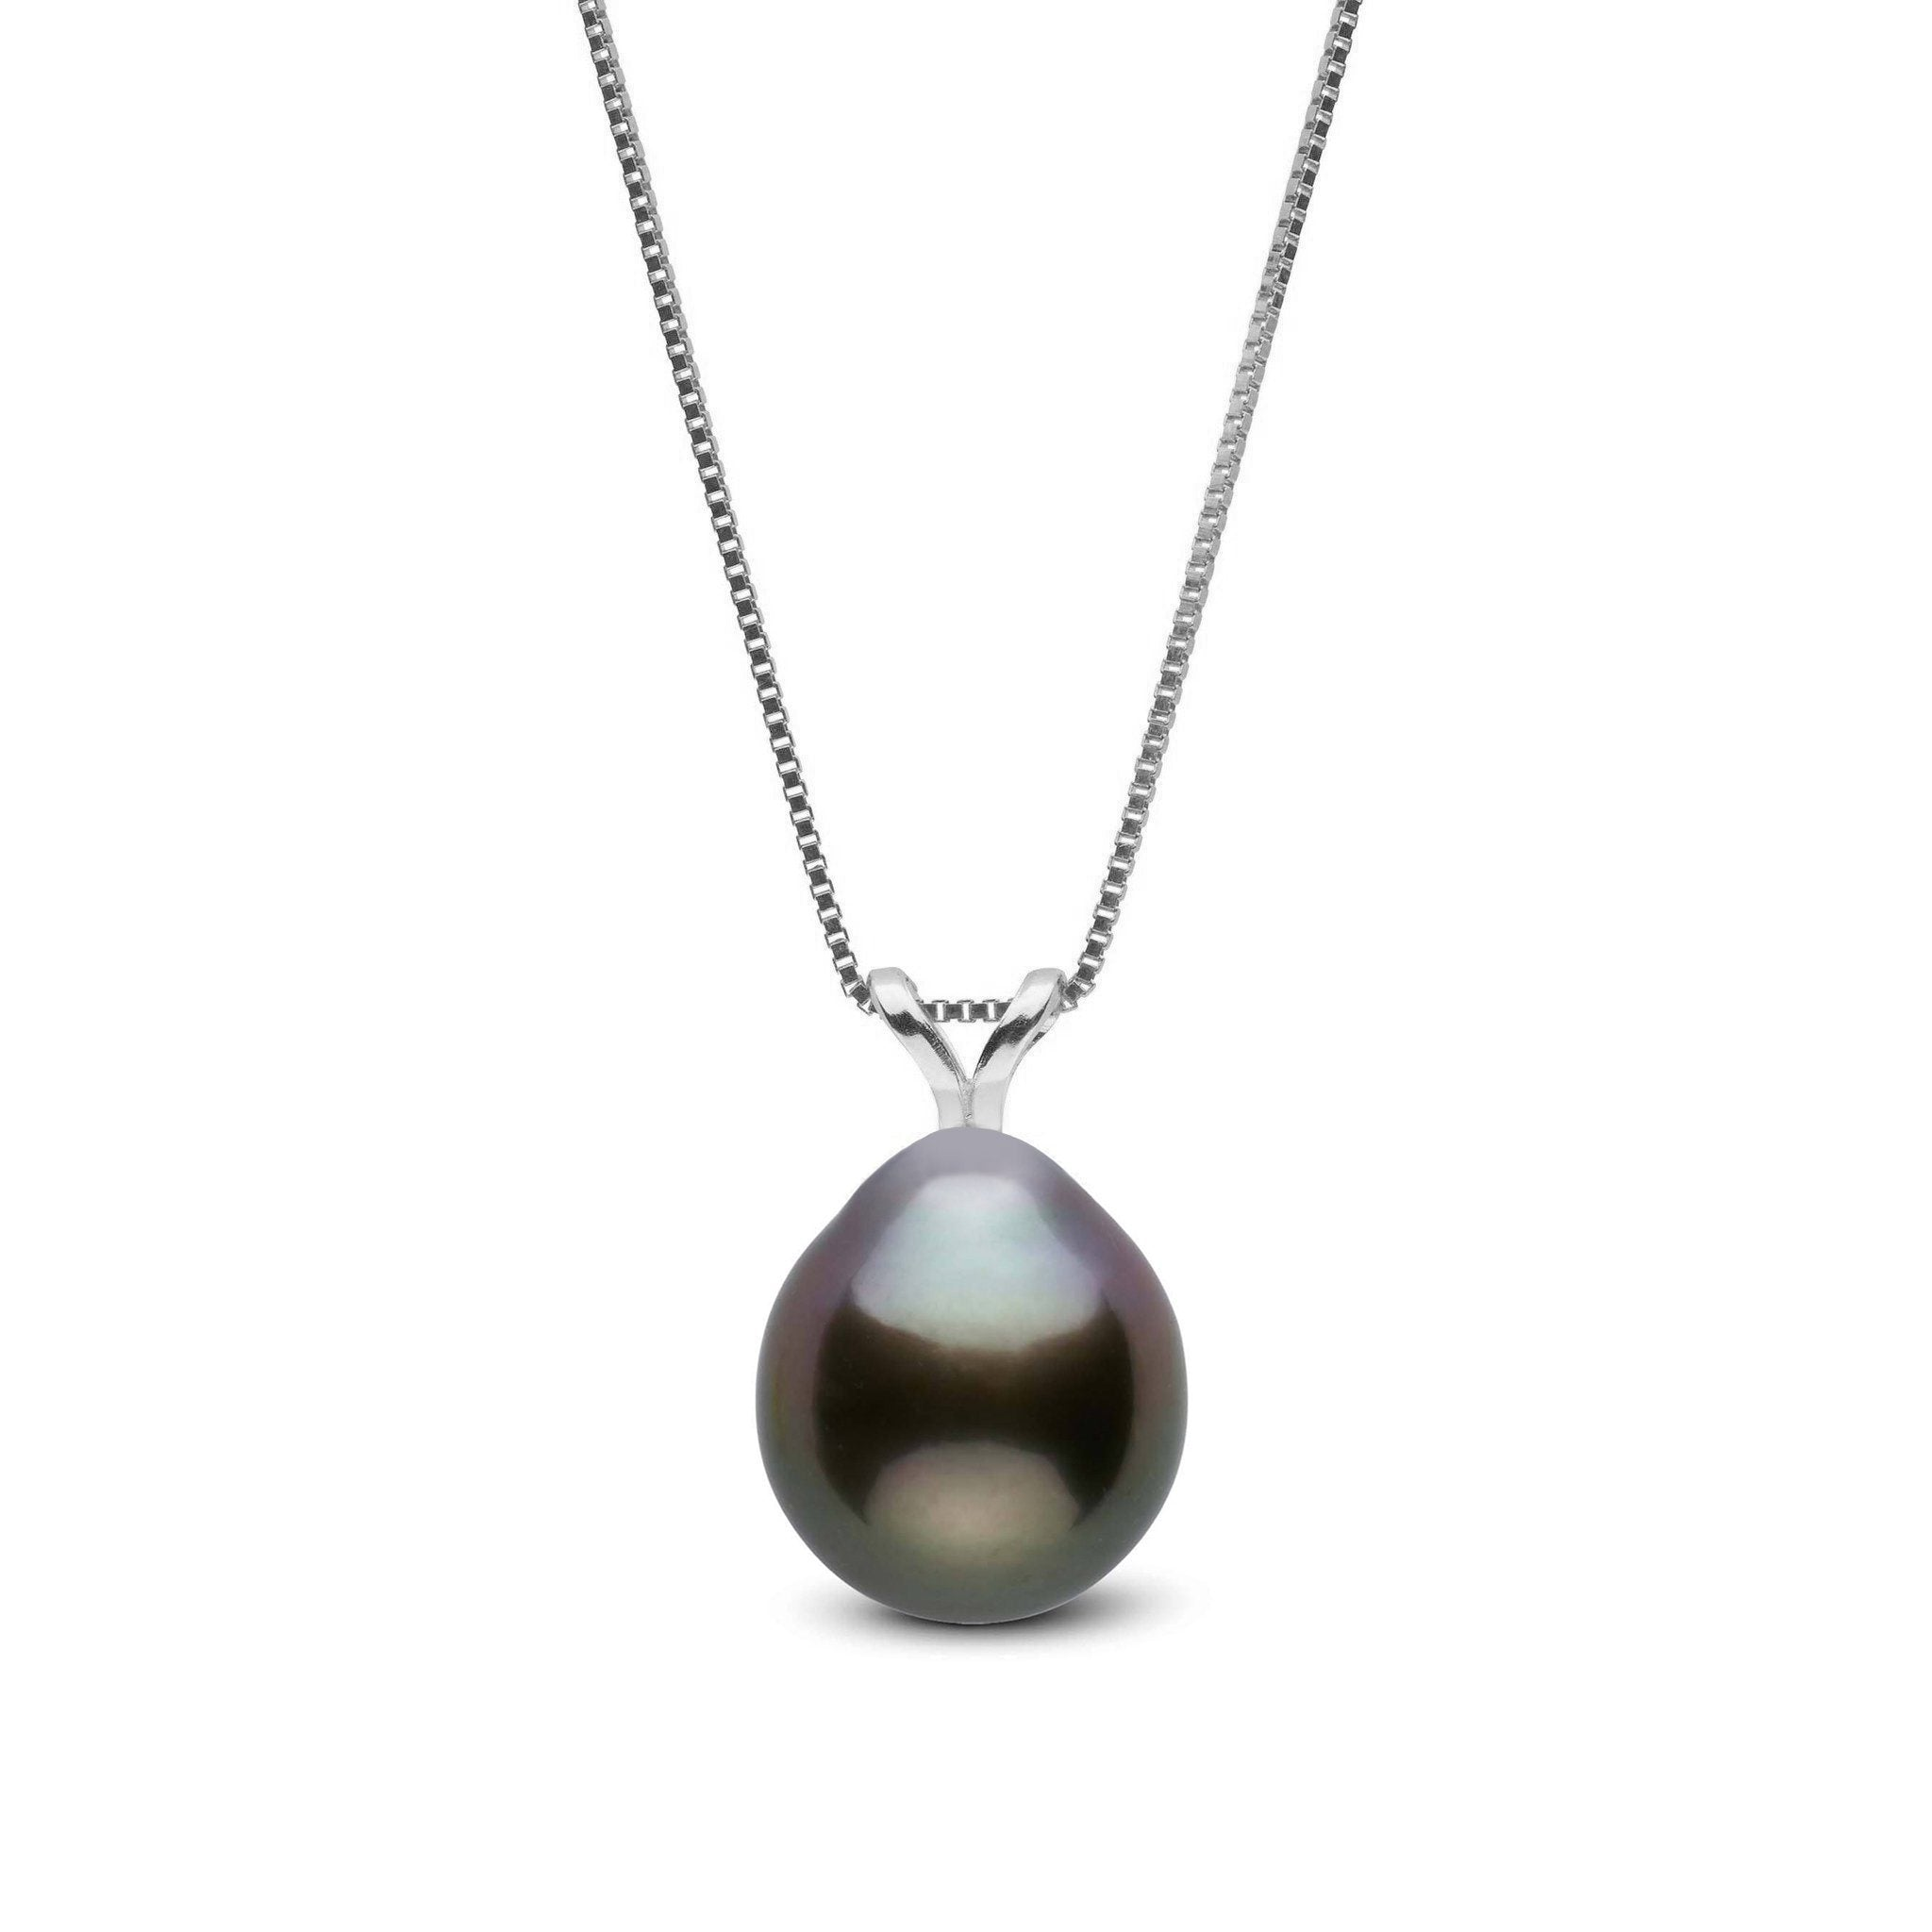 Unity Collection 8.0-9.0 mm Drop Tahitian Pearl Pendant